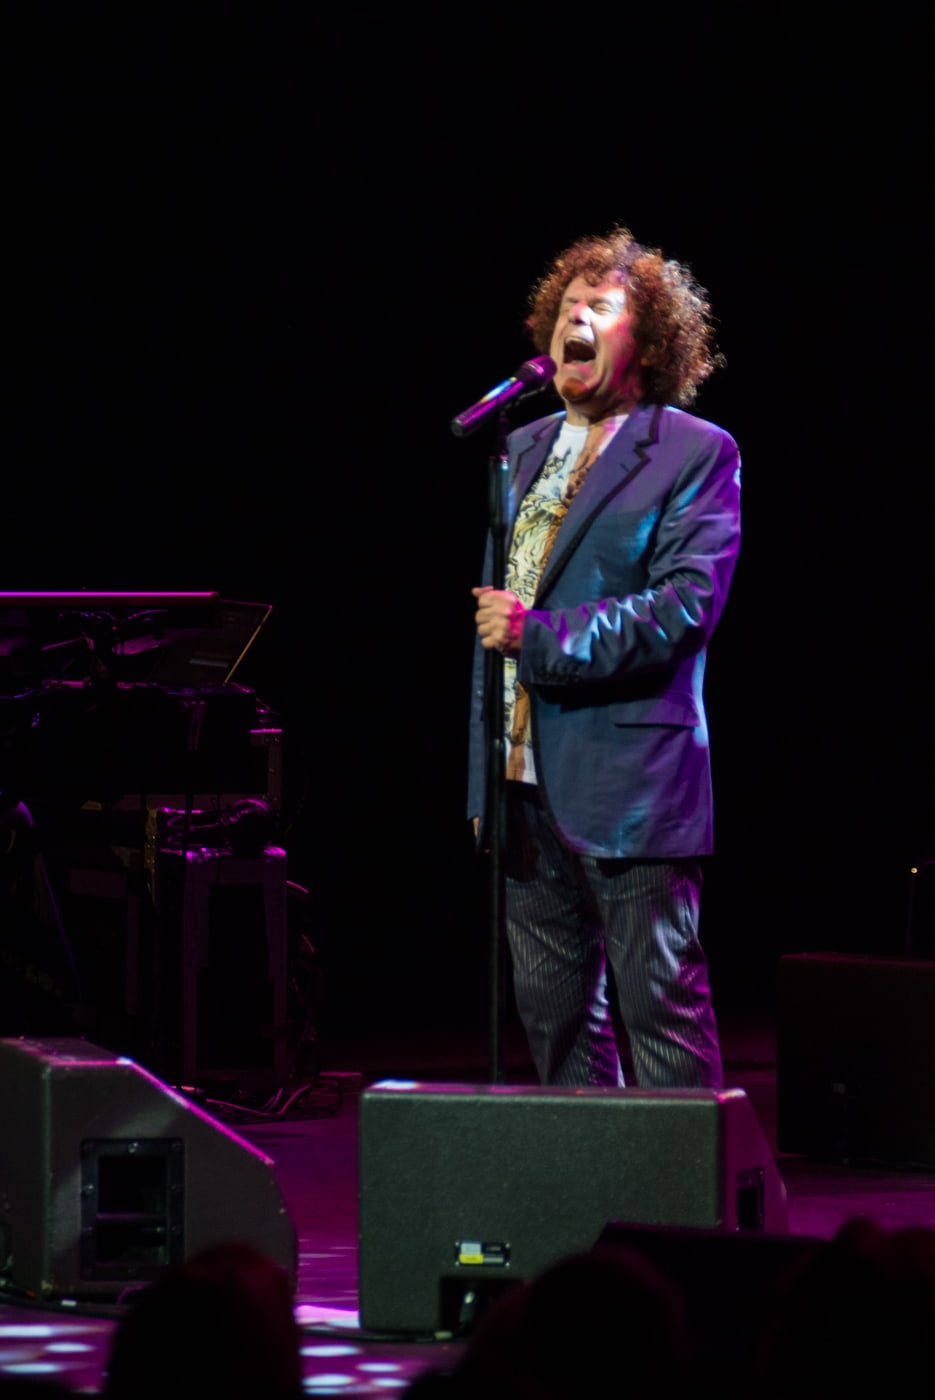 Leo Sayer at Bord Gais Energy Theatre by Sean Smyth (16-10-15) (63 of 129)